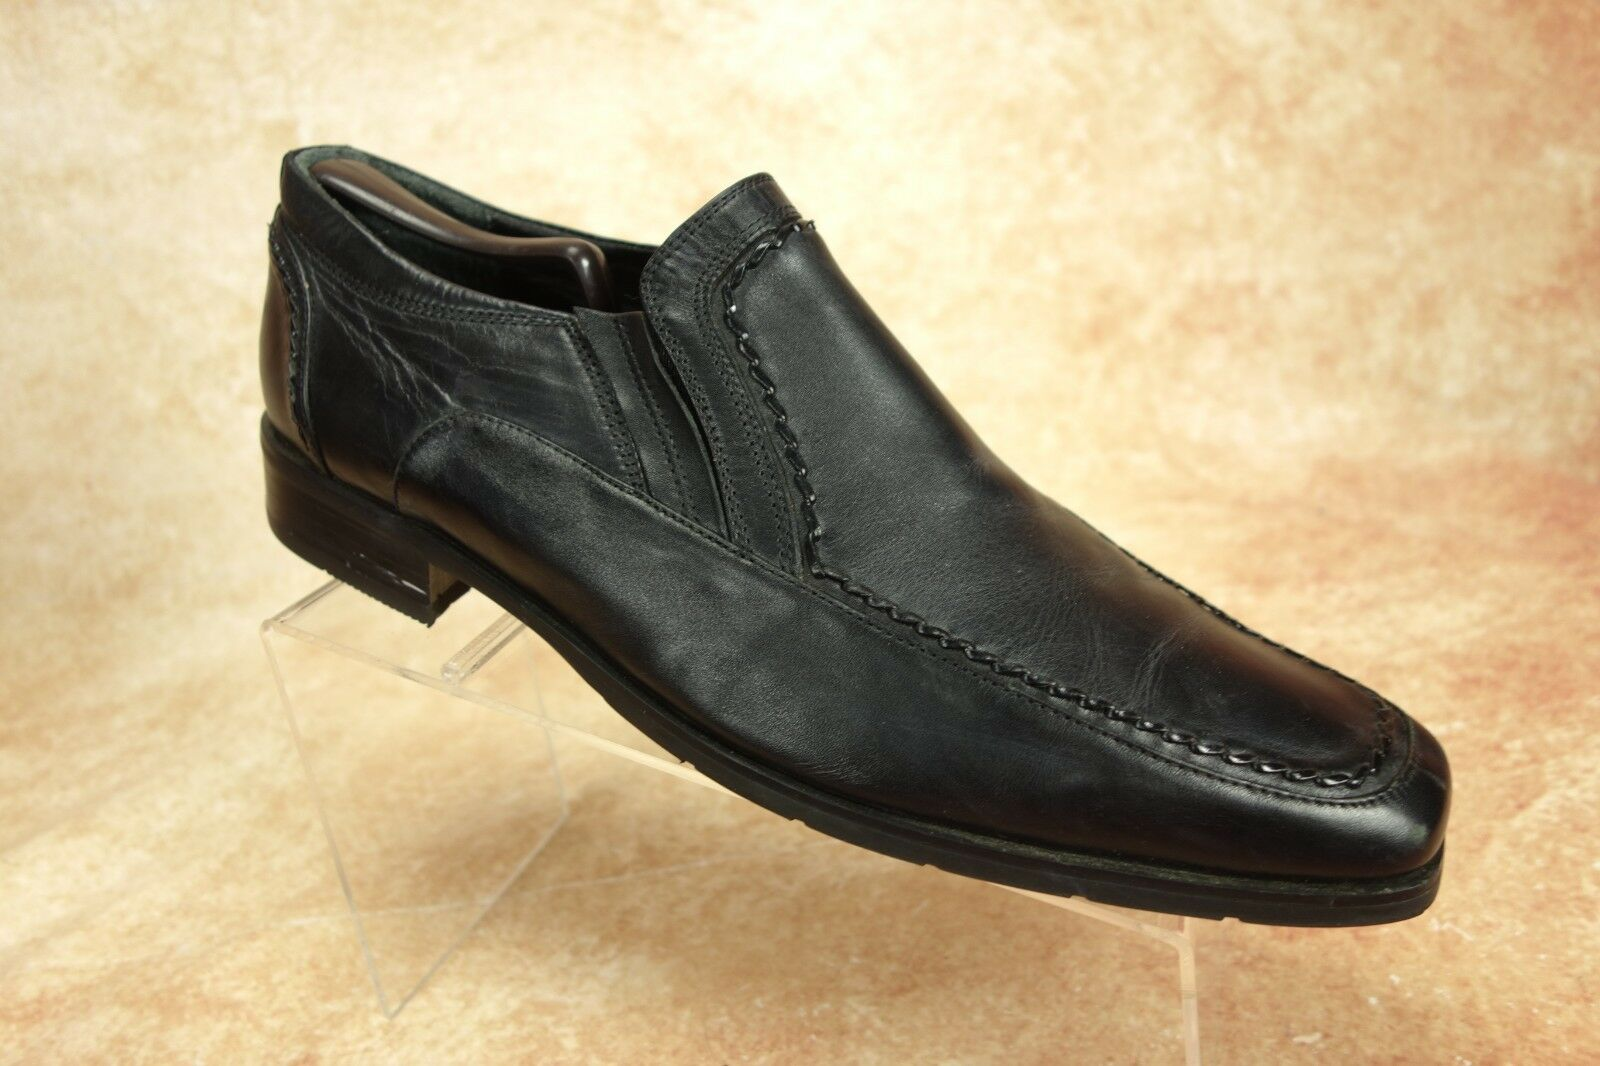 Bed Stu Black Leather Moc Toe Slip On Casual Loafers shoes Mens Size 11 US